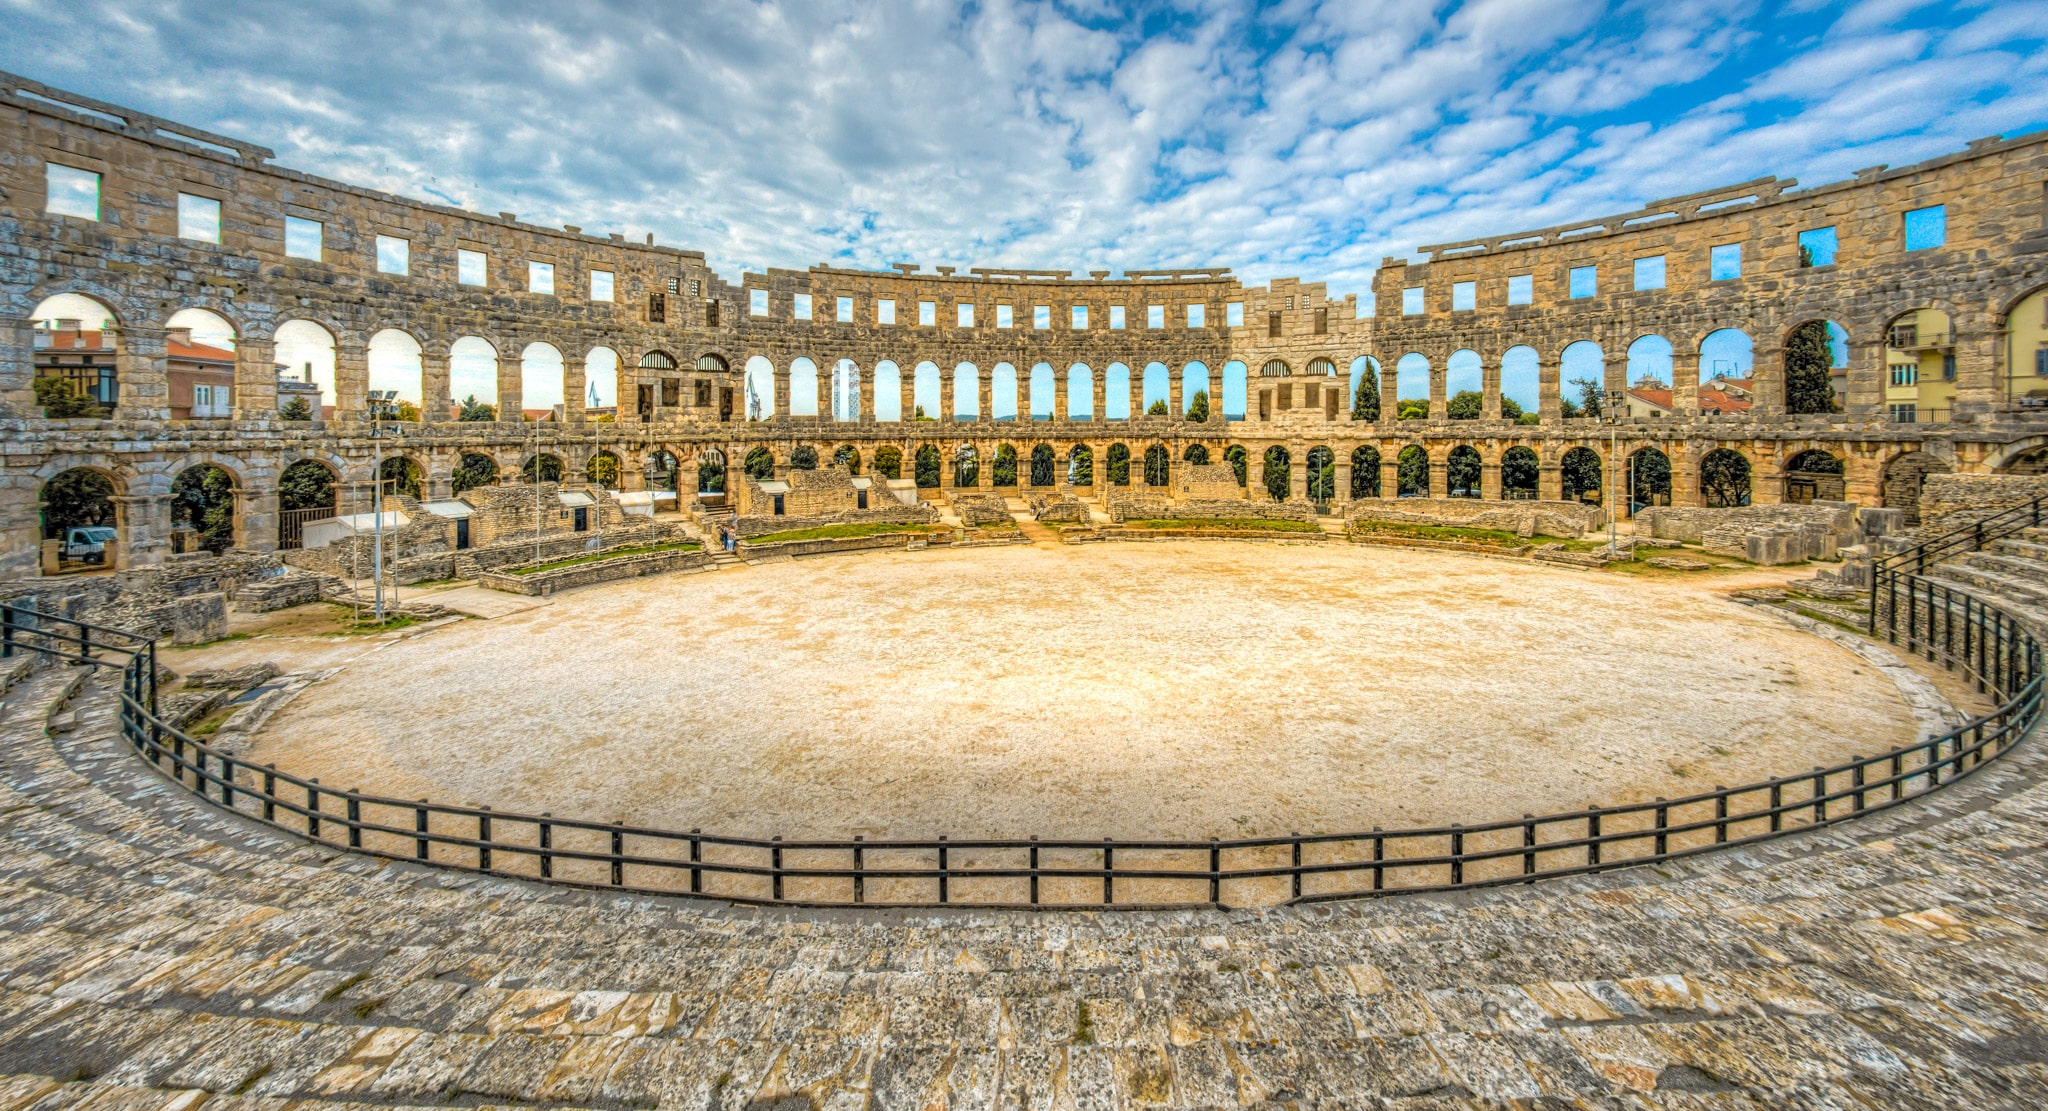 An interior view of the Pula Arena in the Istrian city of Pula, Croatia, constructed between 27 BC and 68 AD by Emperor Vespasian.